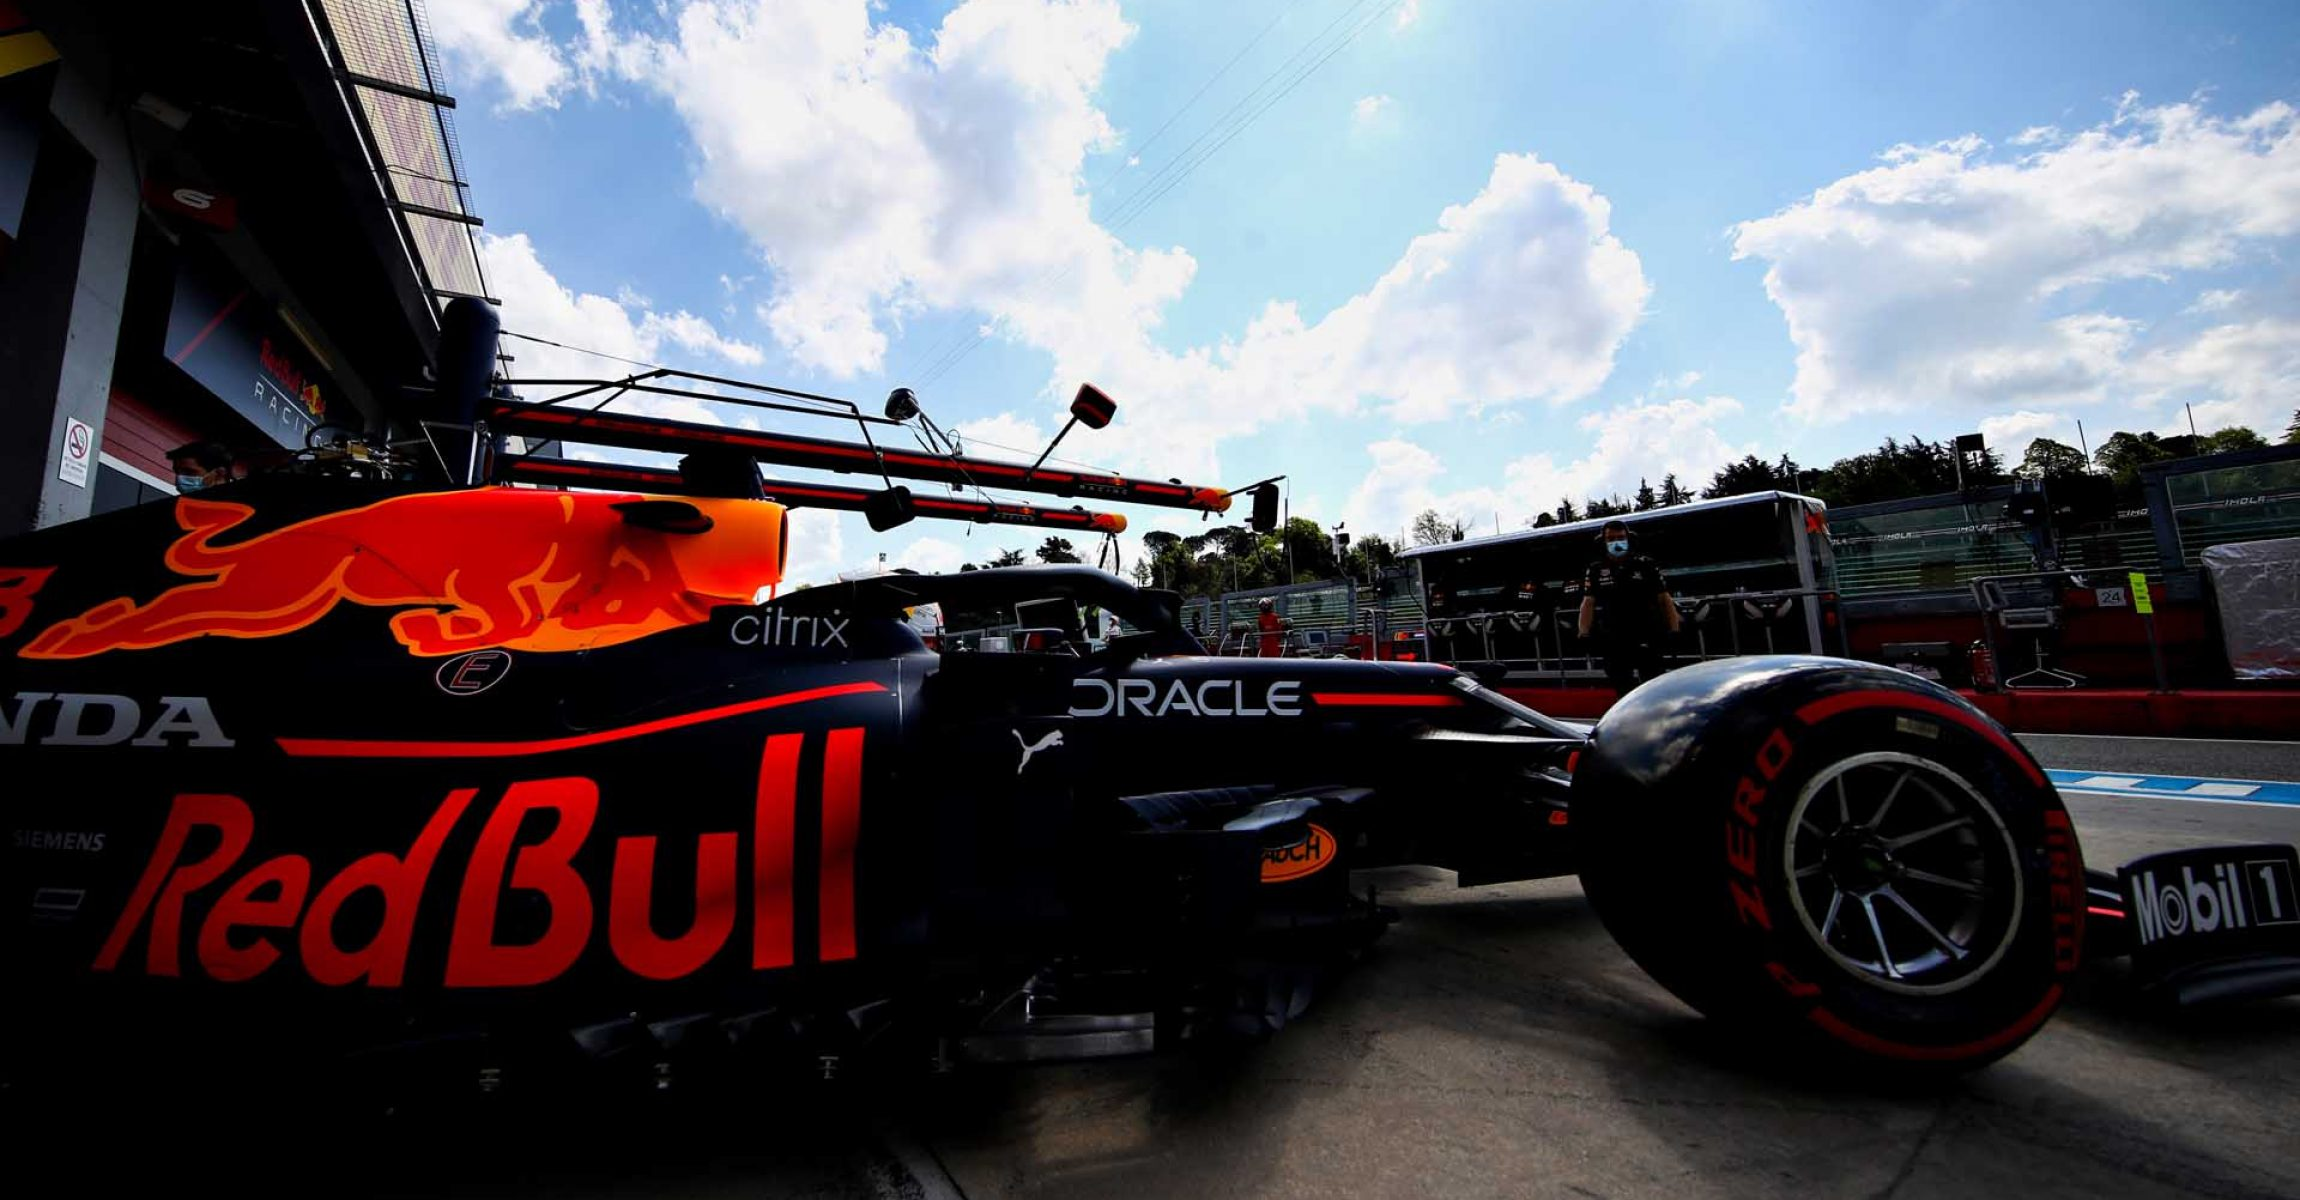 IMOLA, ITALY - APRIL 16: Max Verstappen of the Netherlands driving the (33) Red Bull Racing RB16B Honda leaves the garage during practice ahead of the F1 Grand Prix of Emilia Romagna at Autodromo Enzo e Dino Ferrari on April 16, 2021 in Imola, Italy. (Photo by Mark Thompson/Getty Images)